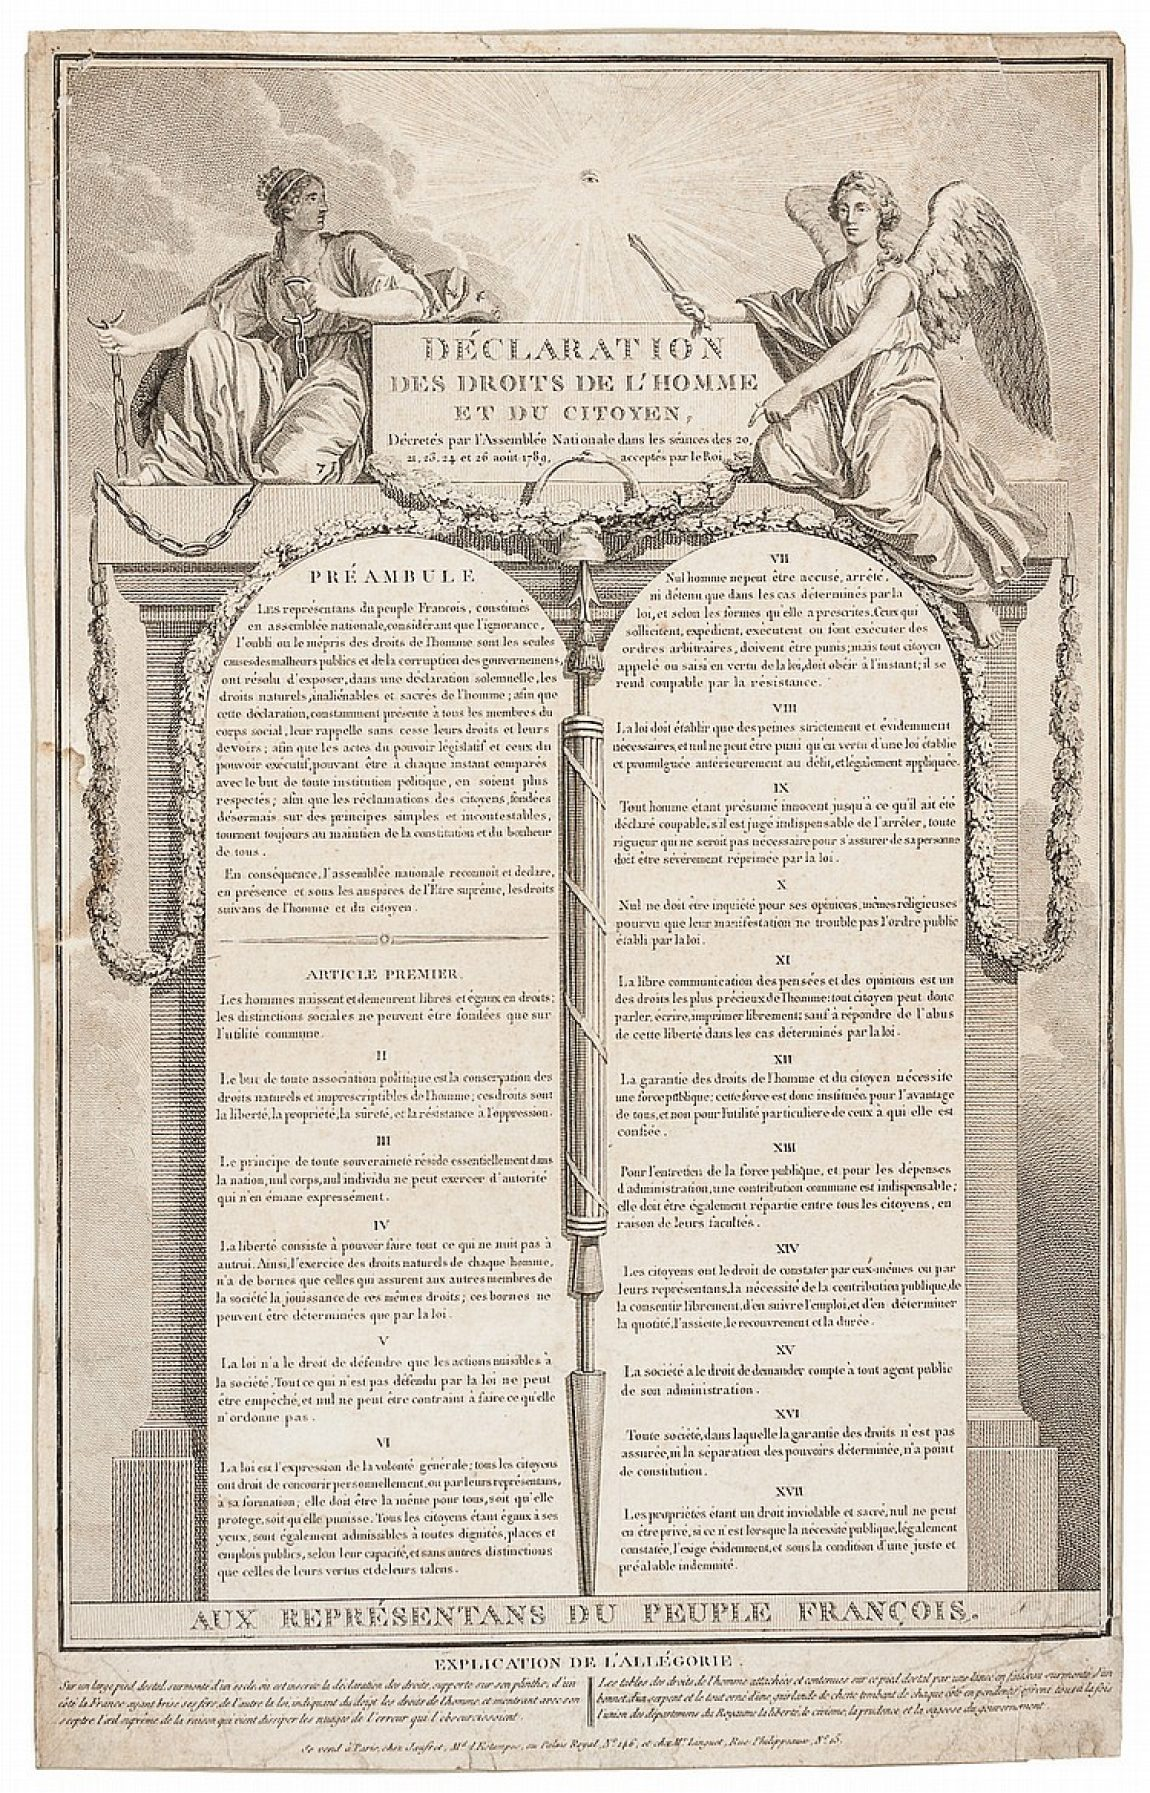 Picture of the Declaration of the Rights of Man. A key result of the French revolution.